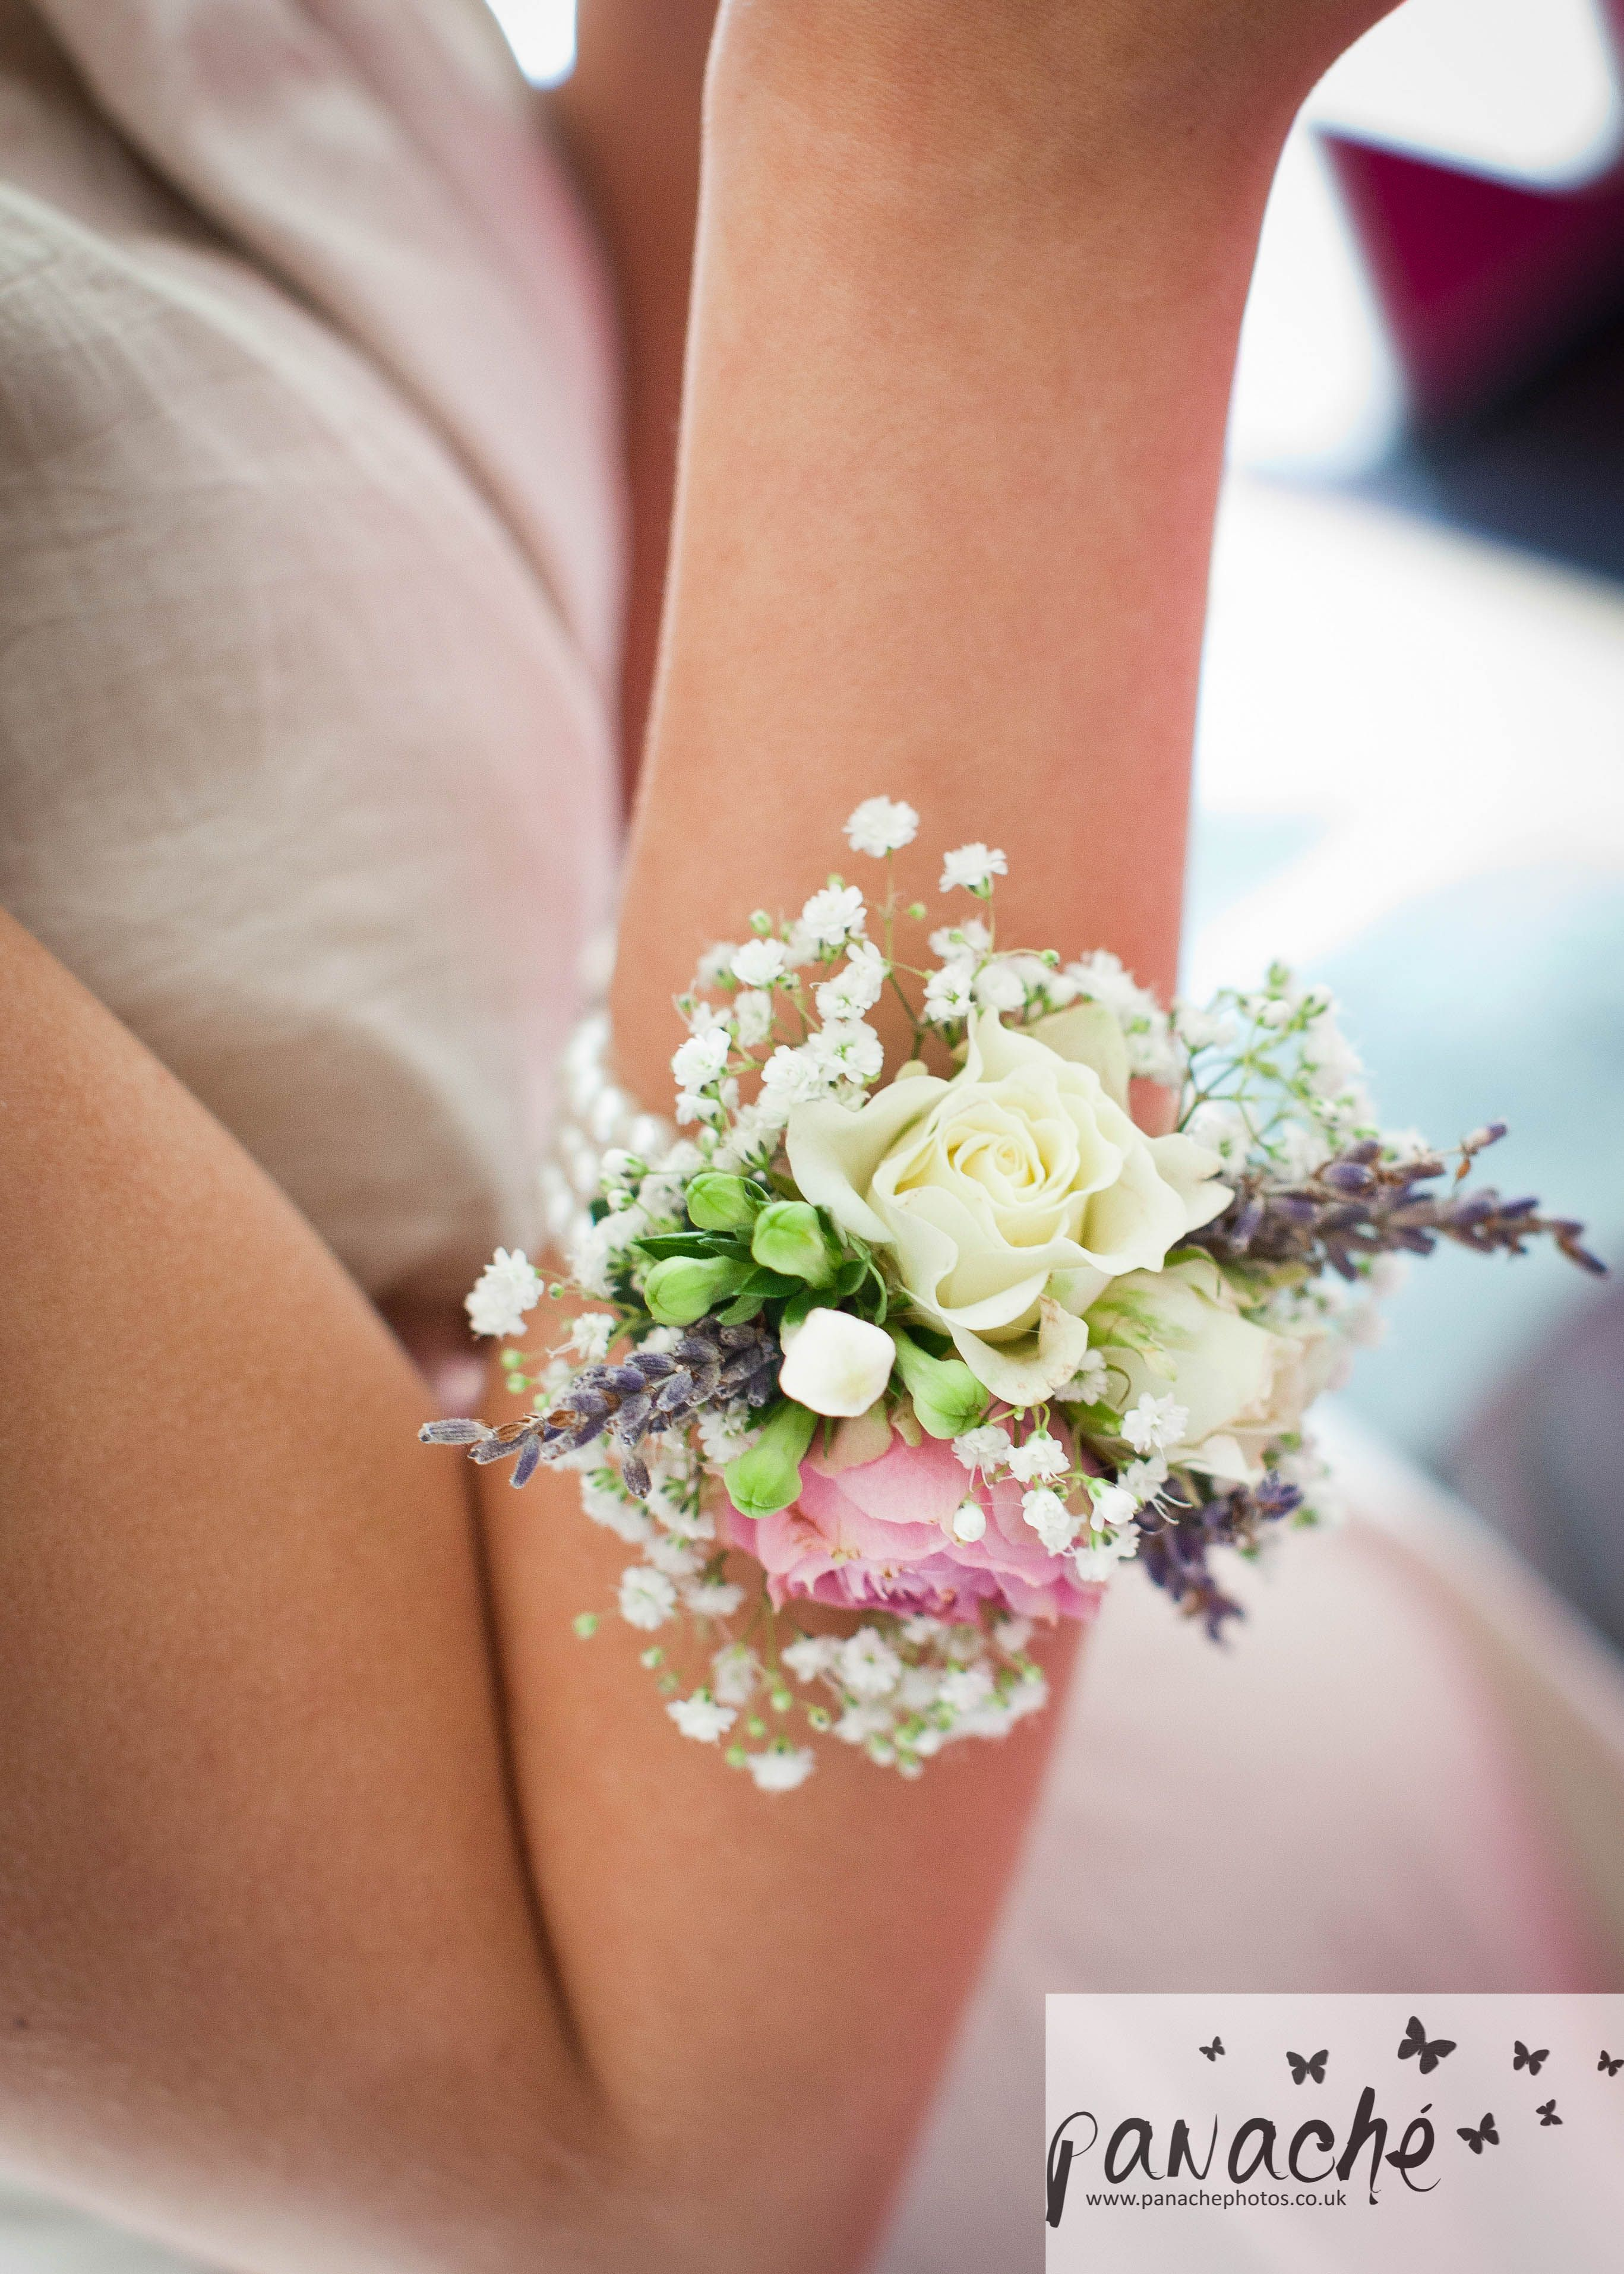 This Wrist Corsage Was Created On Ivory Ribbon With Lavender